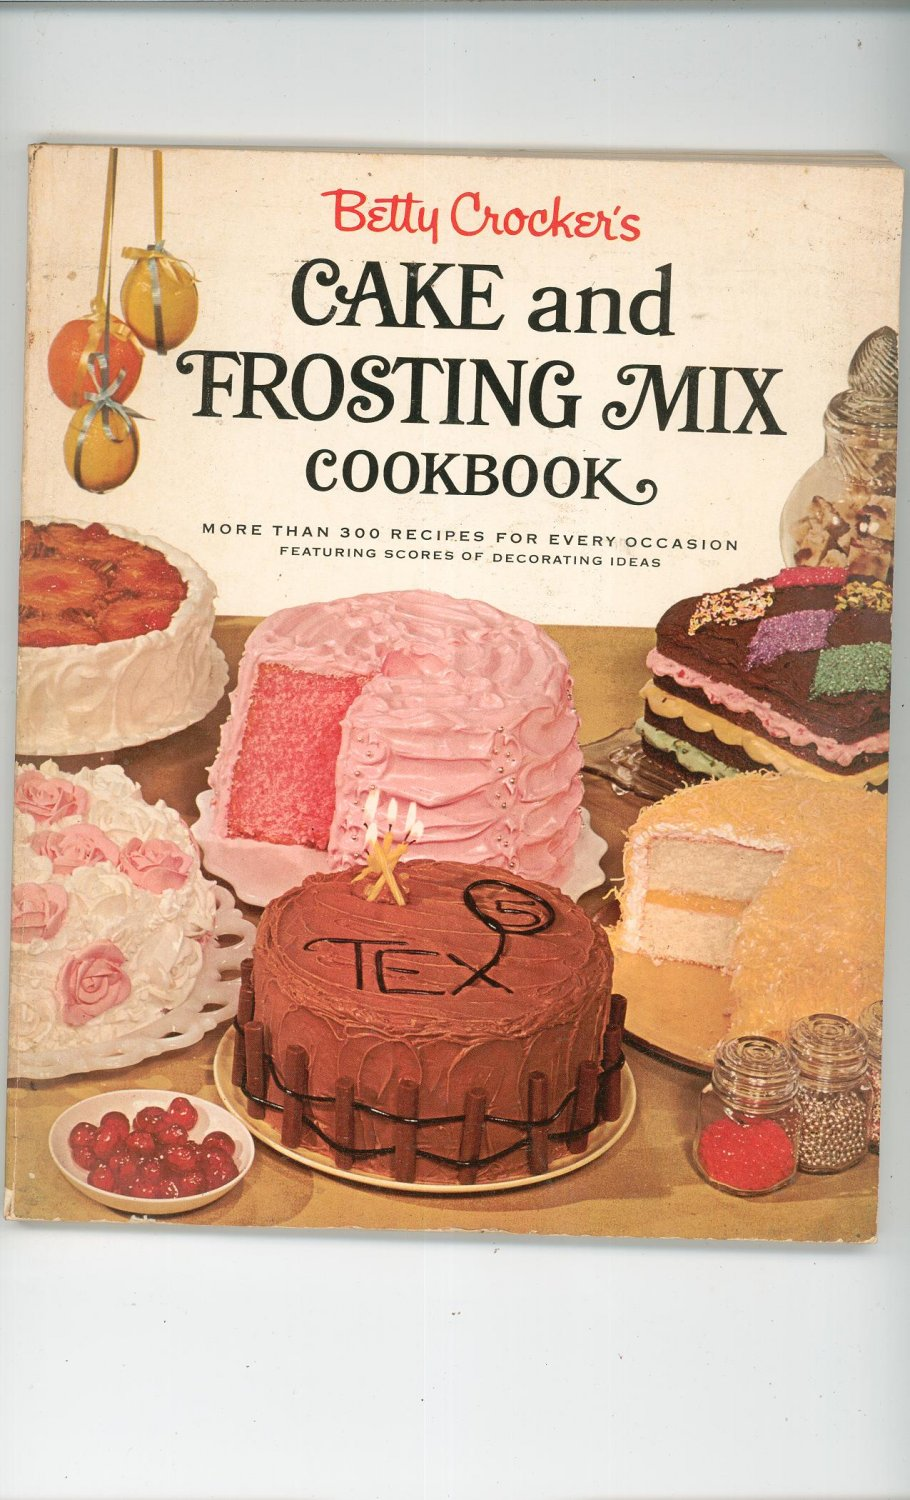 Betty Crocker's Cake and Frosting Mix Cookbook Vintage First Edition 1966